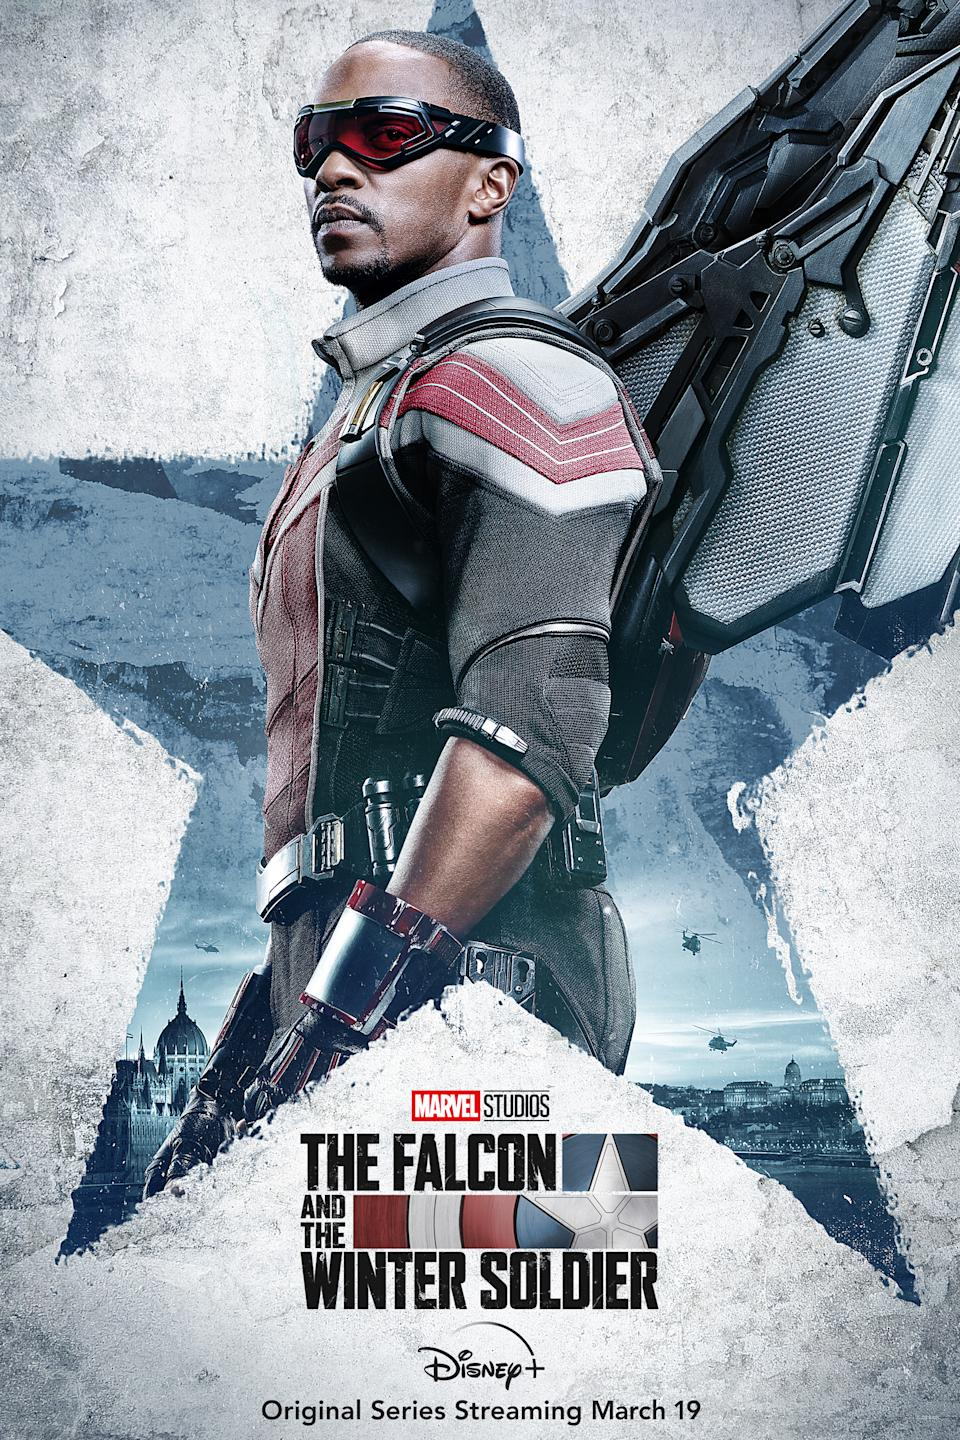 Anthony Mackie as Sam Wilson aka The Falcon in character posters for Marvel Studios' Disney+ series, The Falcon And The Winter Soldier.